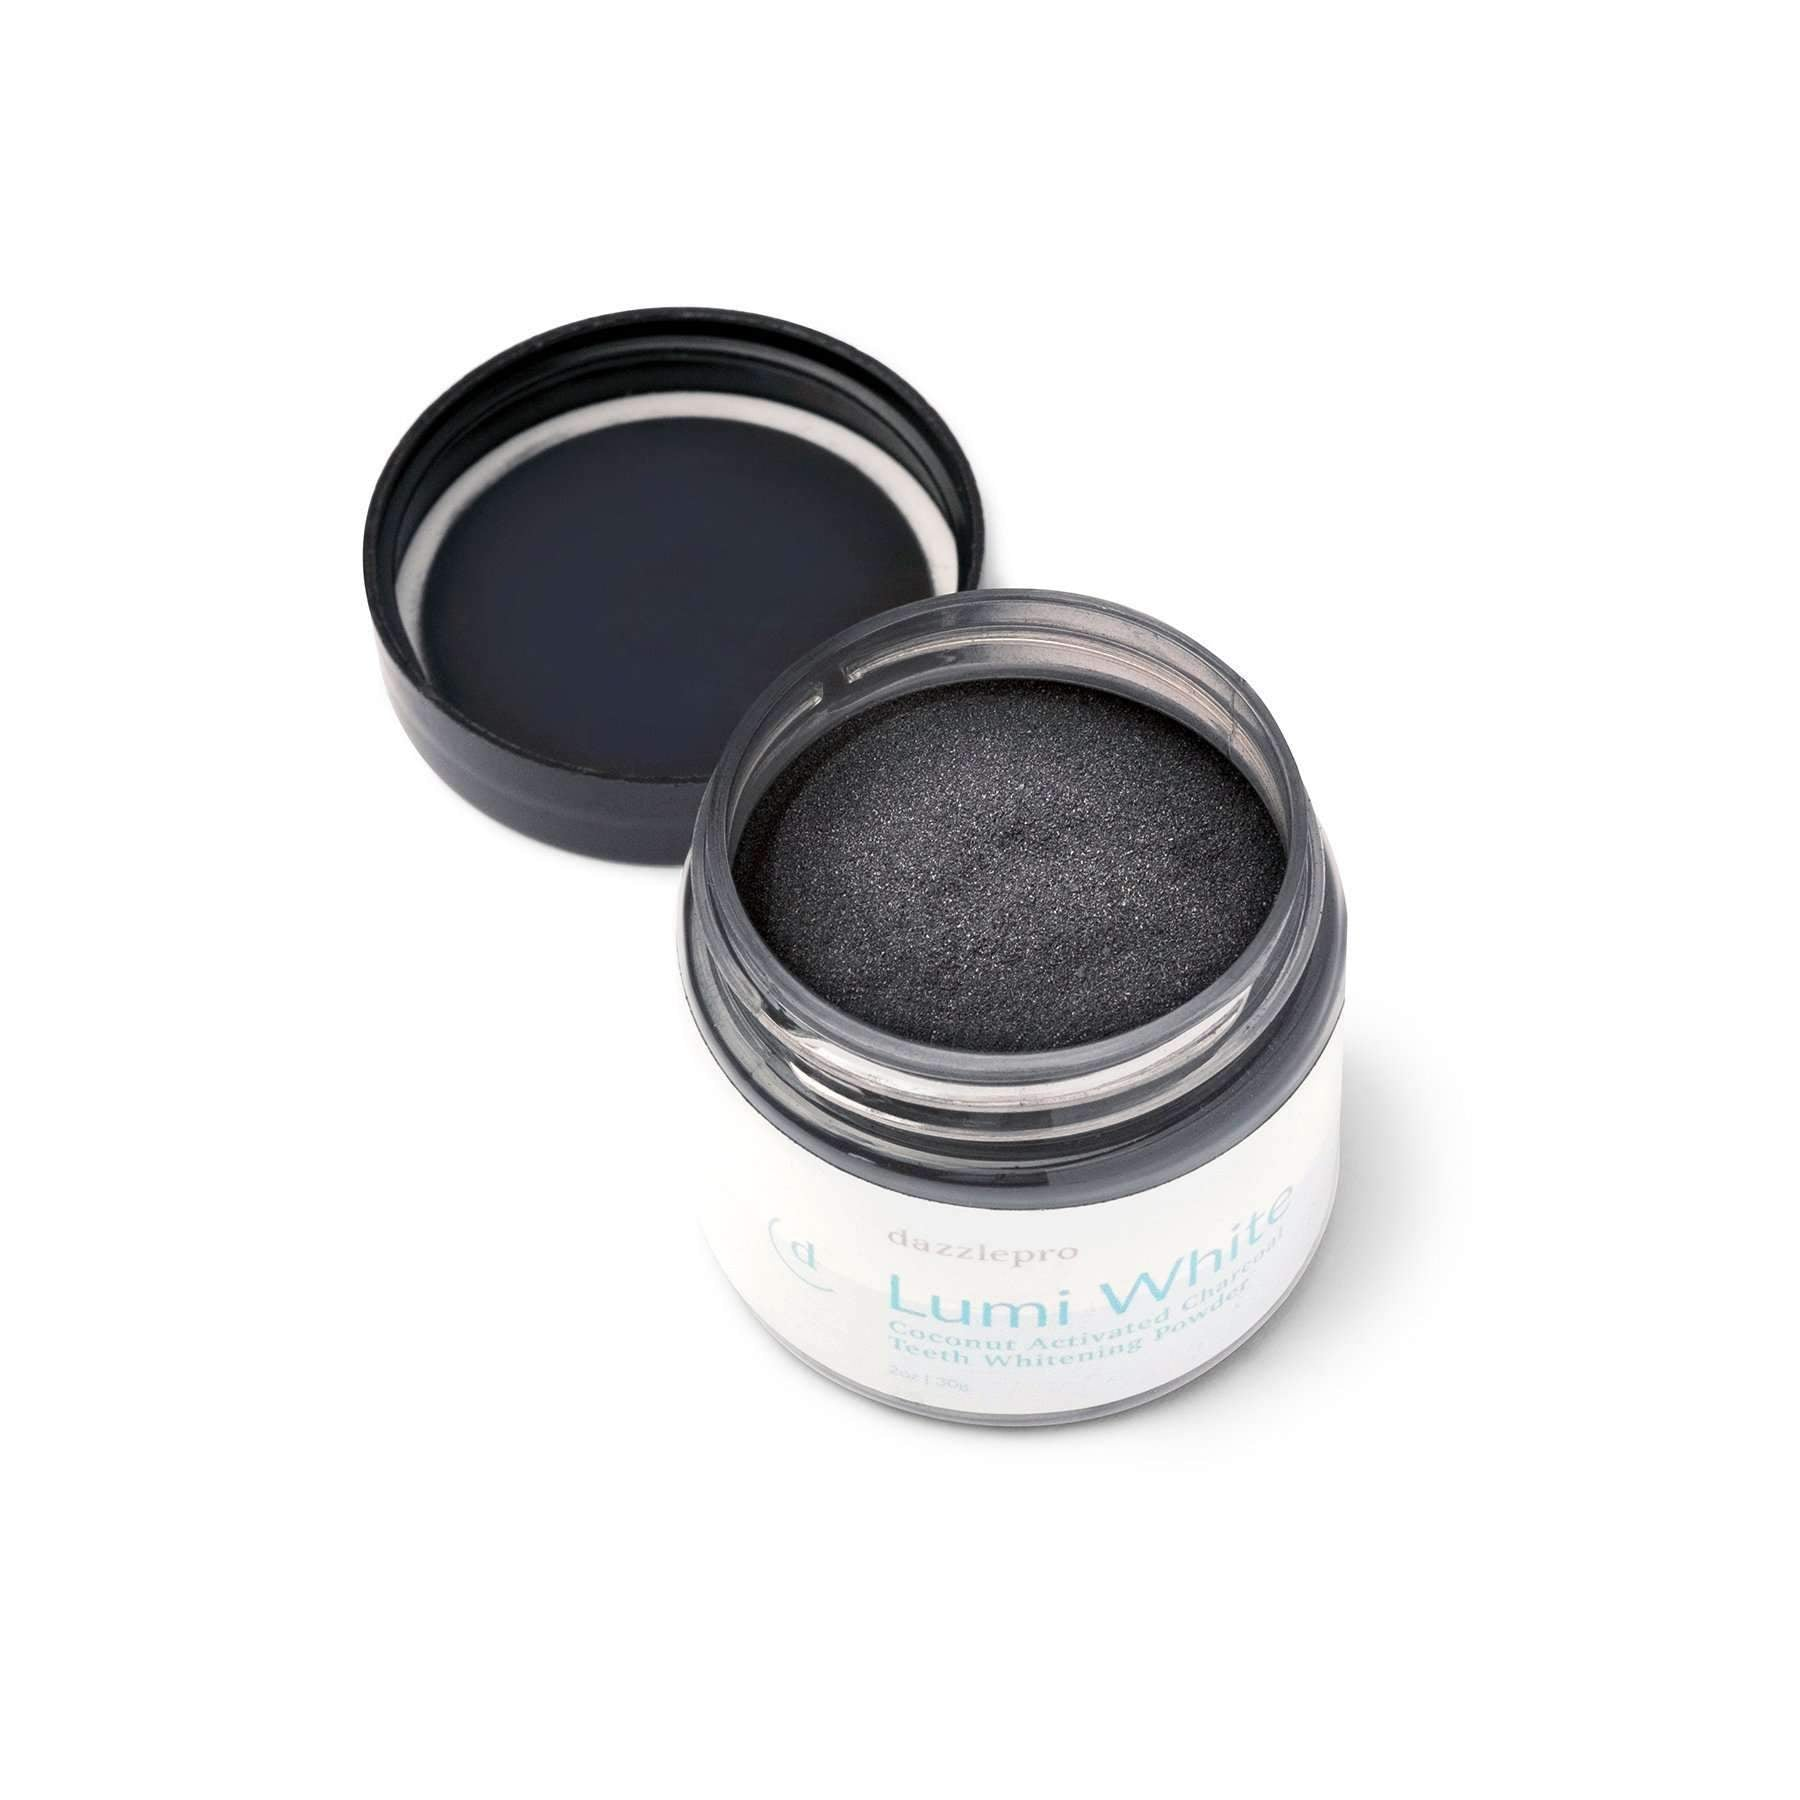 Lumi White - Activated Charcoal Teeth Whitening Powder